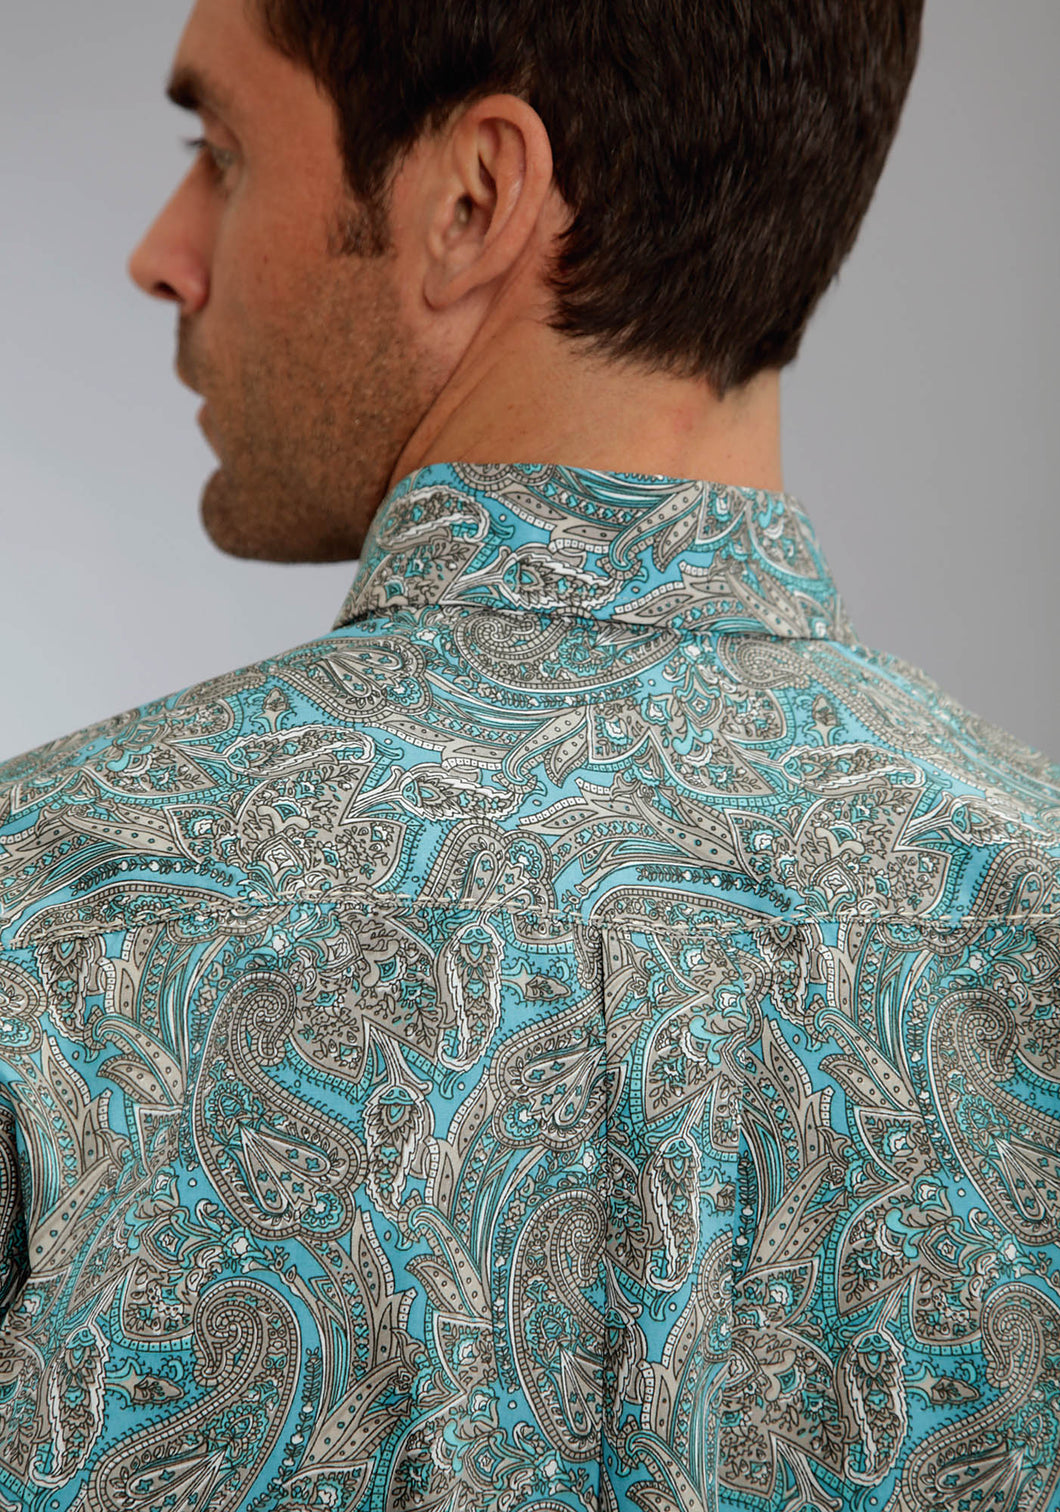 Stetson Men's Collection- Spring Iii Stetson Mens Long Sleeve Shirt 0212 Modern Paisley